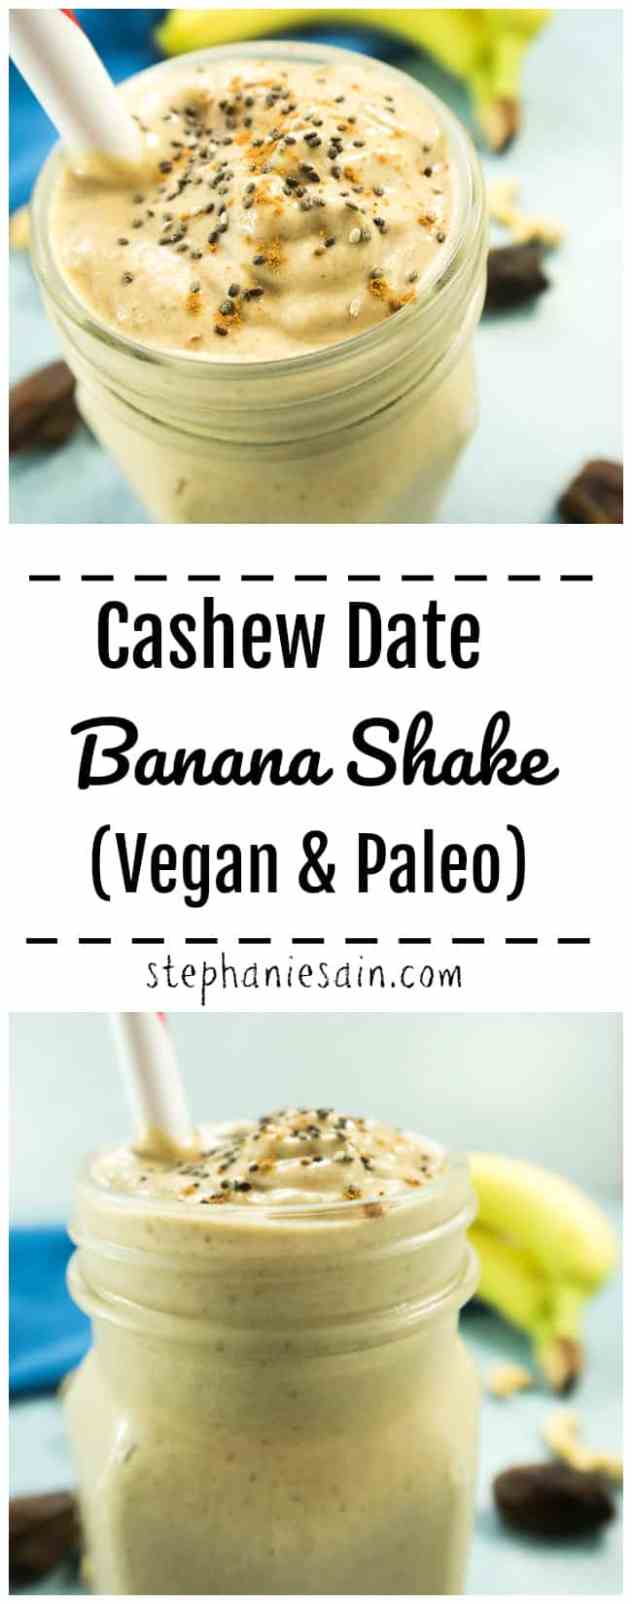 """This Cashew Date Banana Shake is the perfect, healthy, quick breakfast or snack. Loaded with fiber & so many vitamins and nutrients yet tastes like eating a """"candy bar"""". Vegan, Paleo, & Gluten Free."""